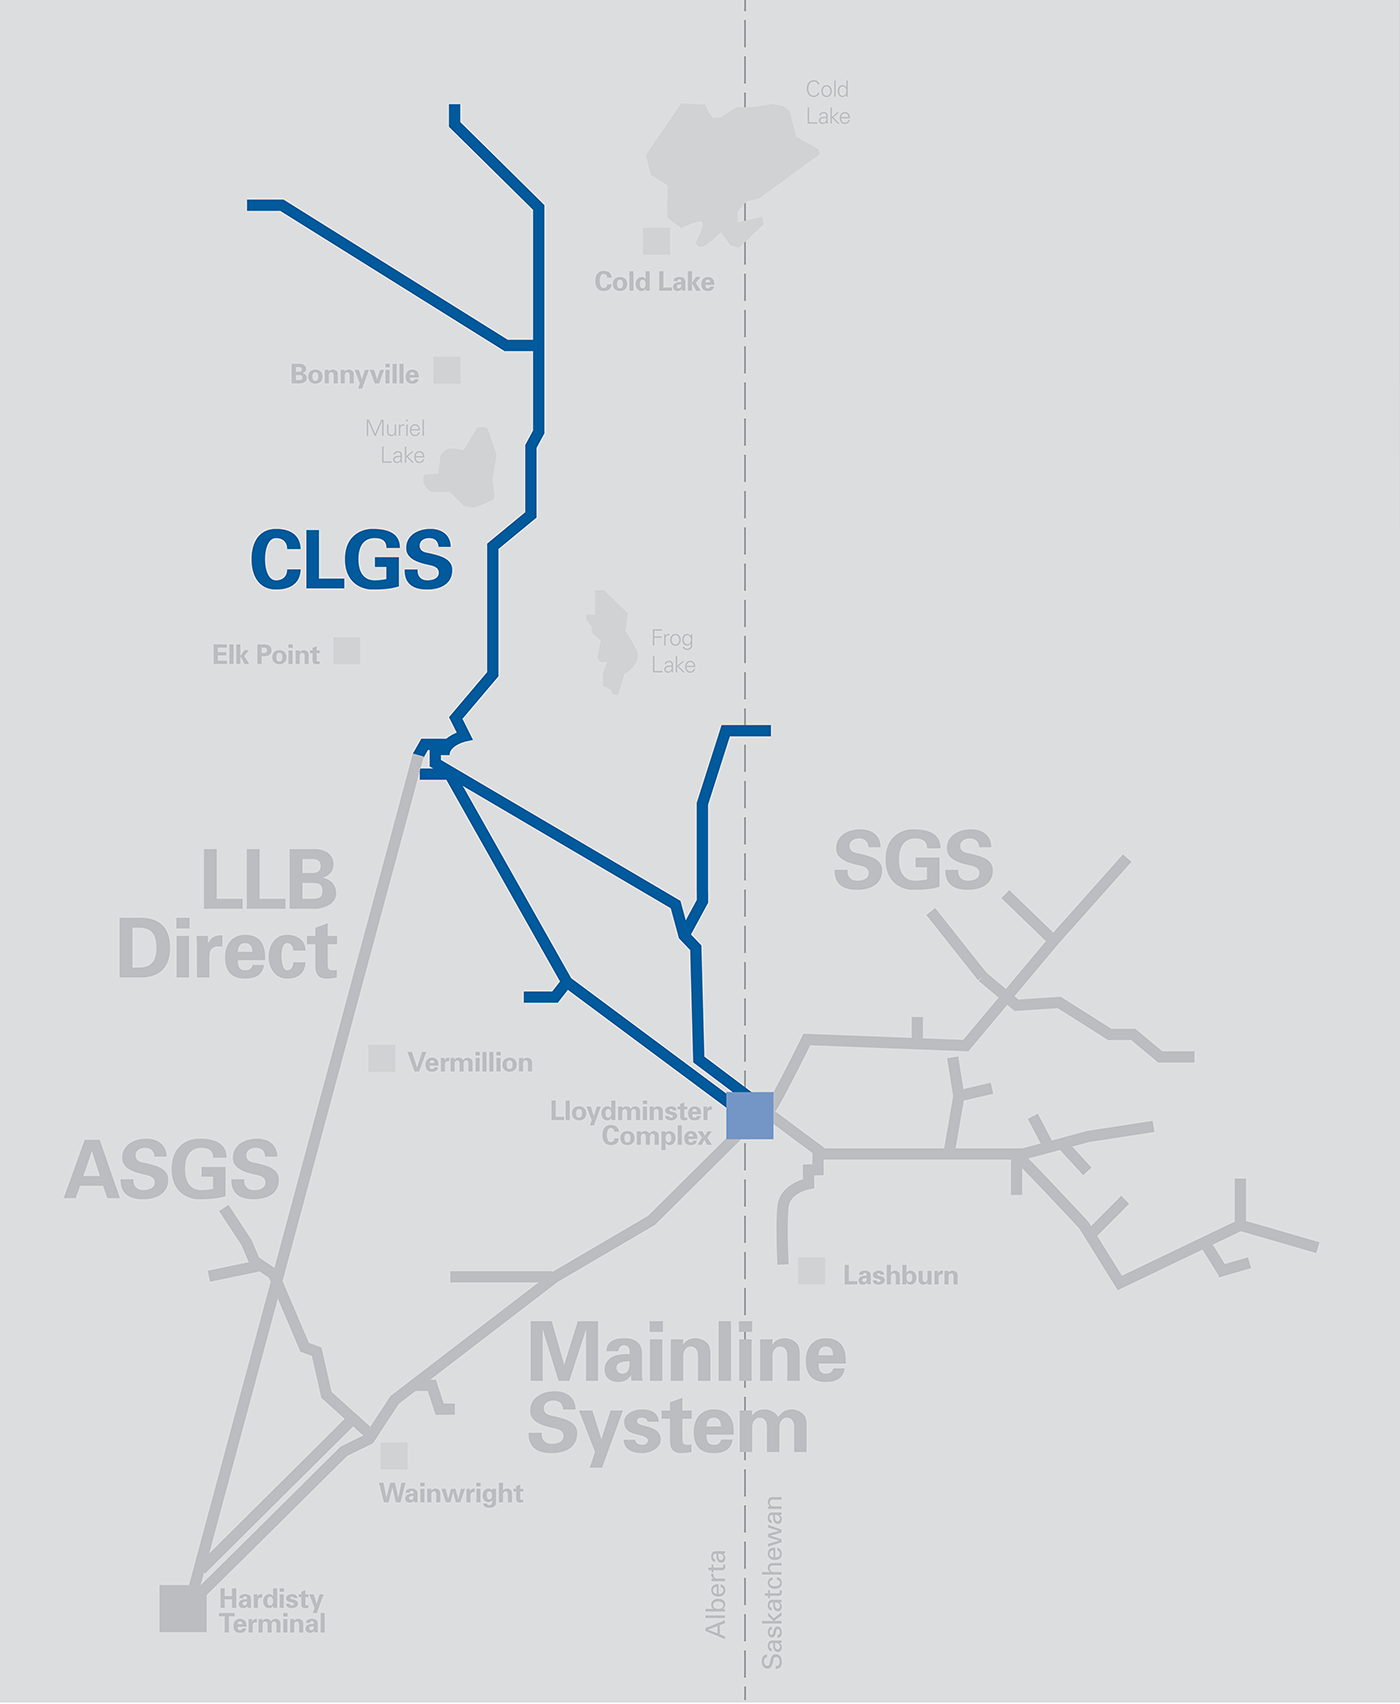 CLGS Pipeline